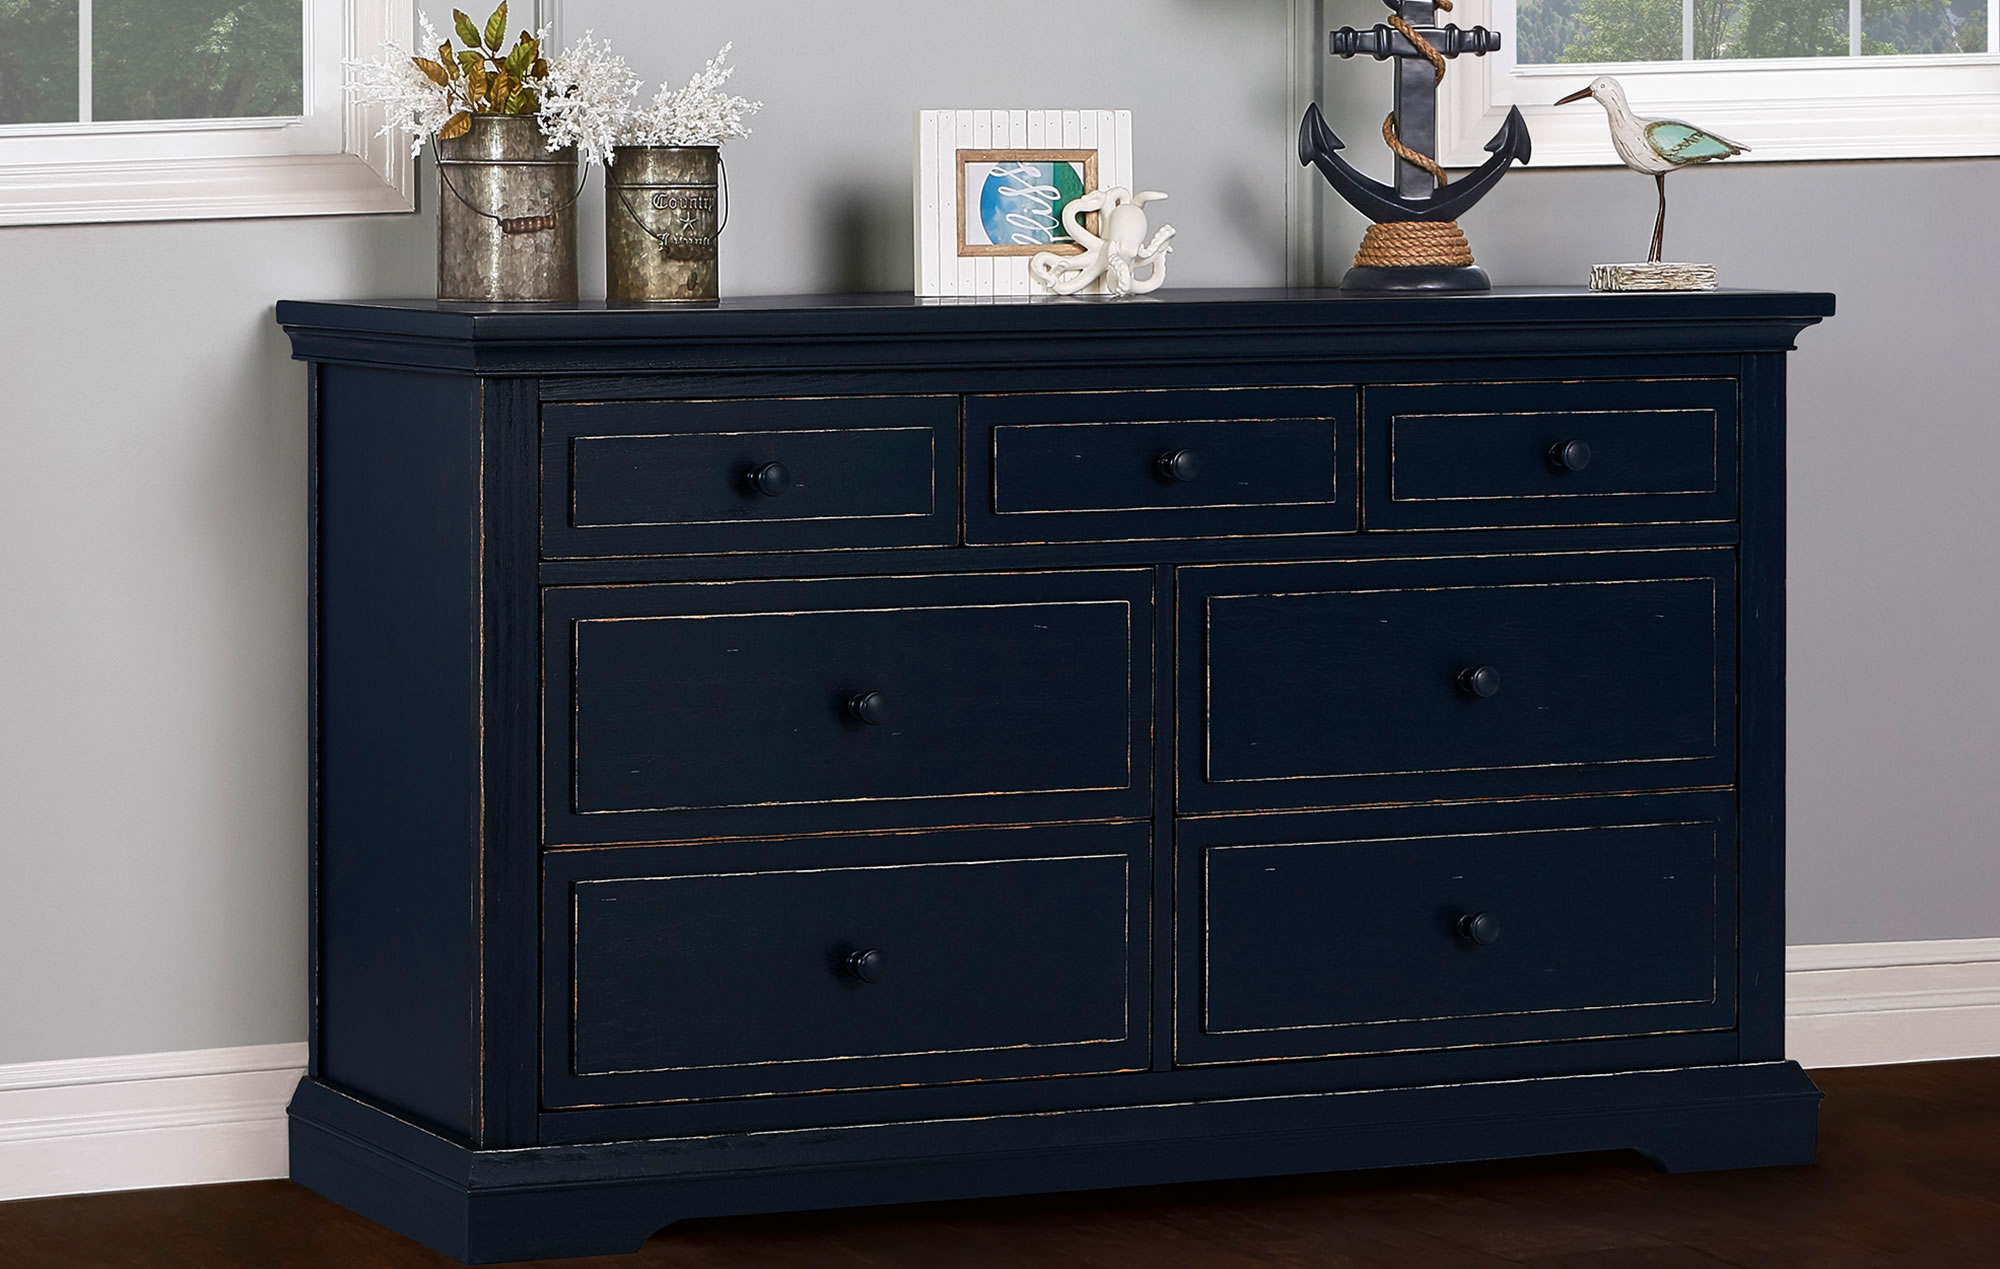 843-DN Evolur Parker Double Dresser RS1